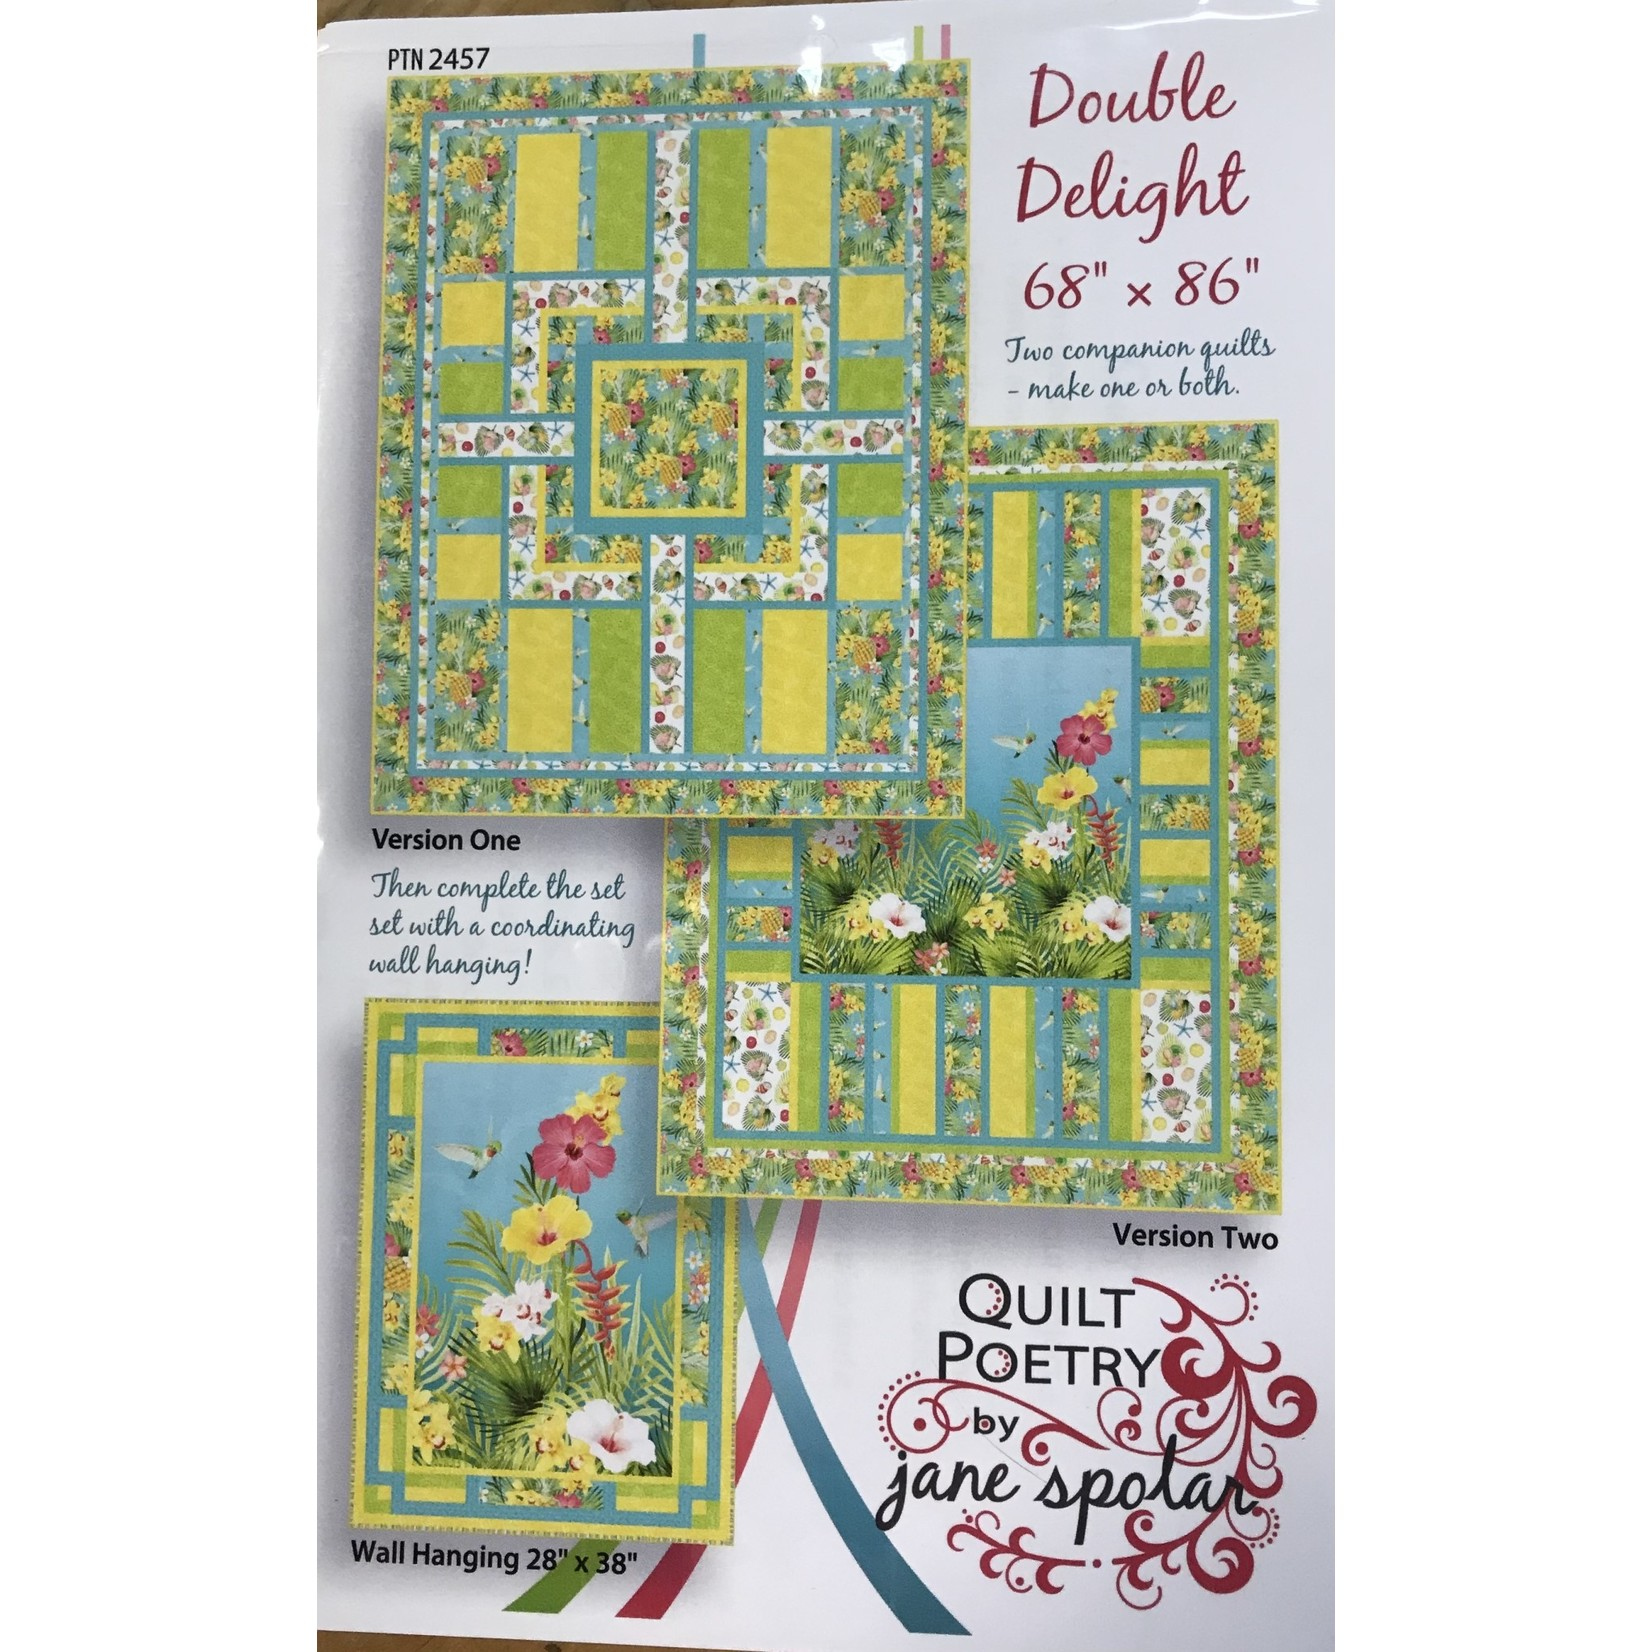 Quilt Poetry DOUBLE DELIGHT PATTERN